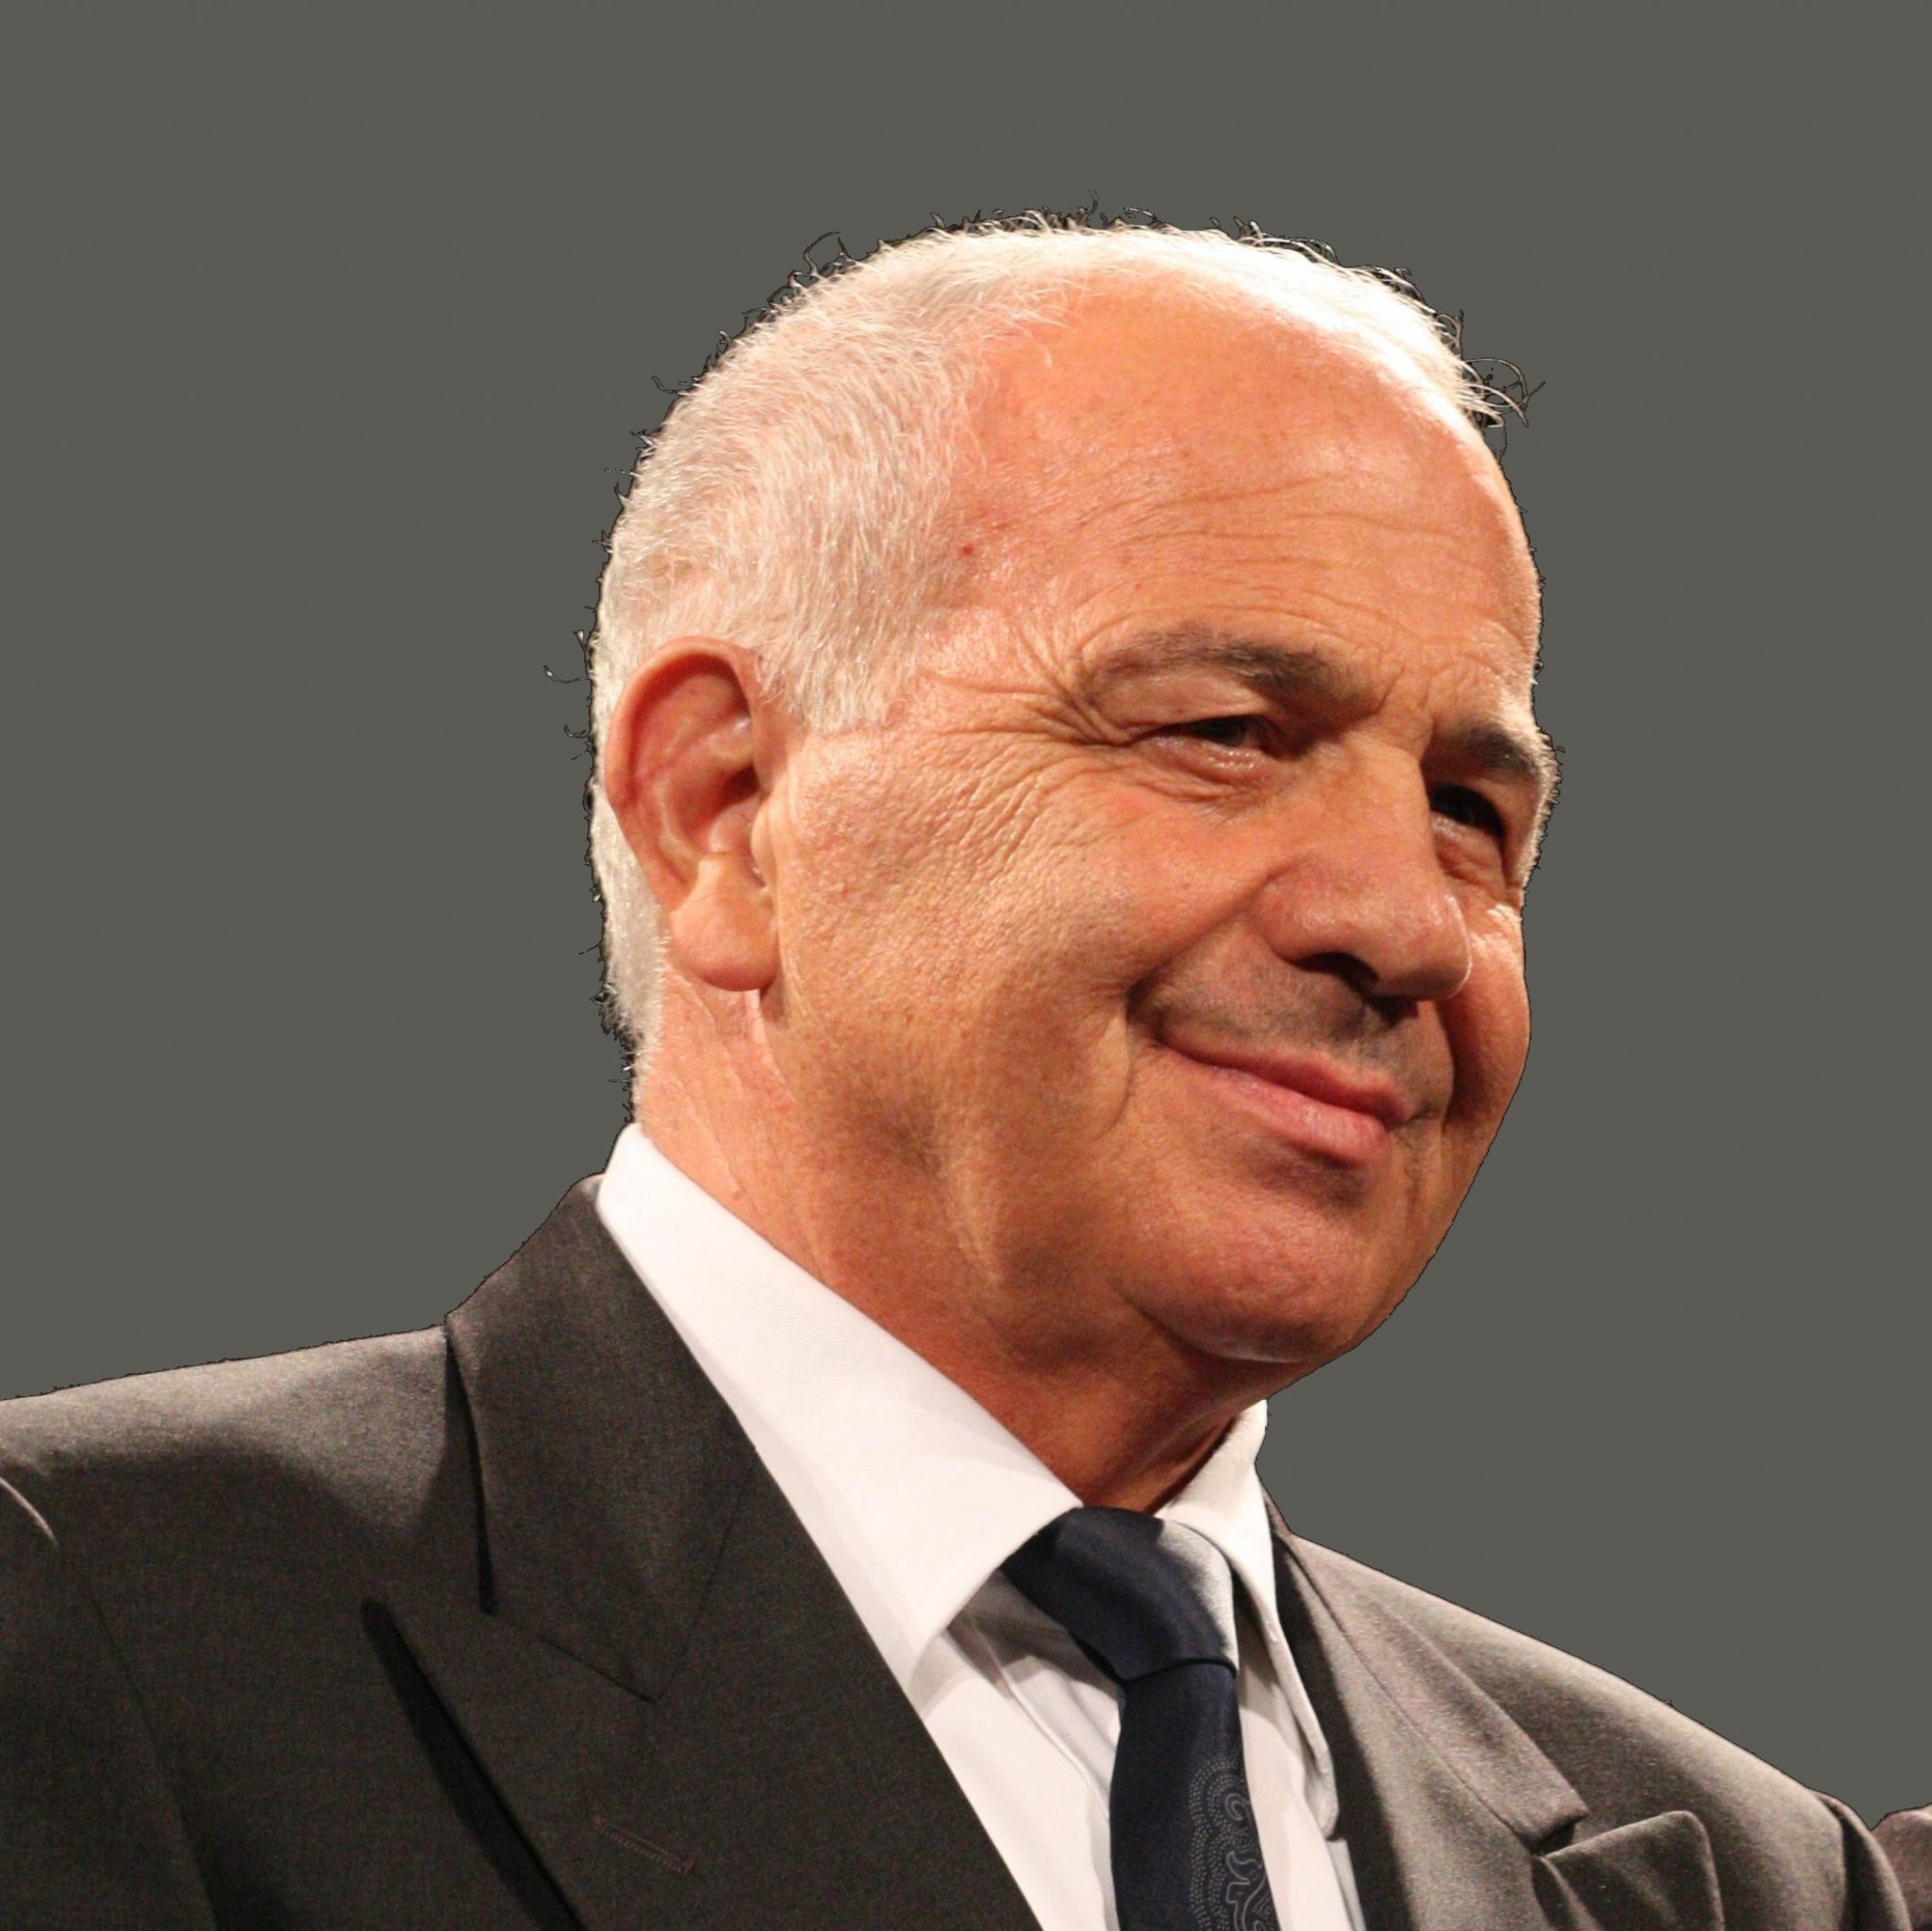 Franco Falcinelli is currently the interim President of AIBA ©EUBC